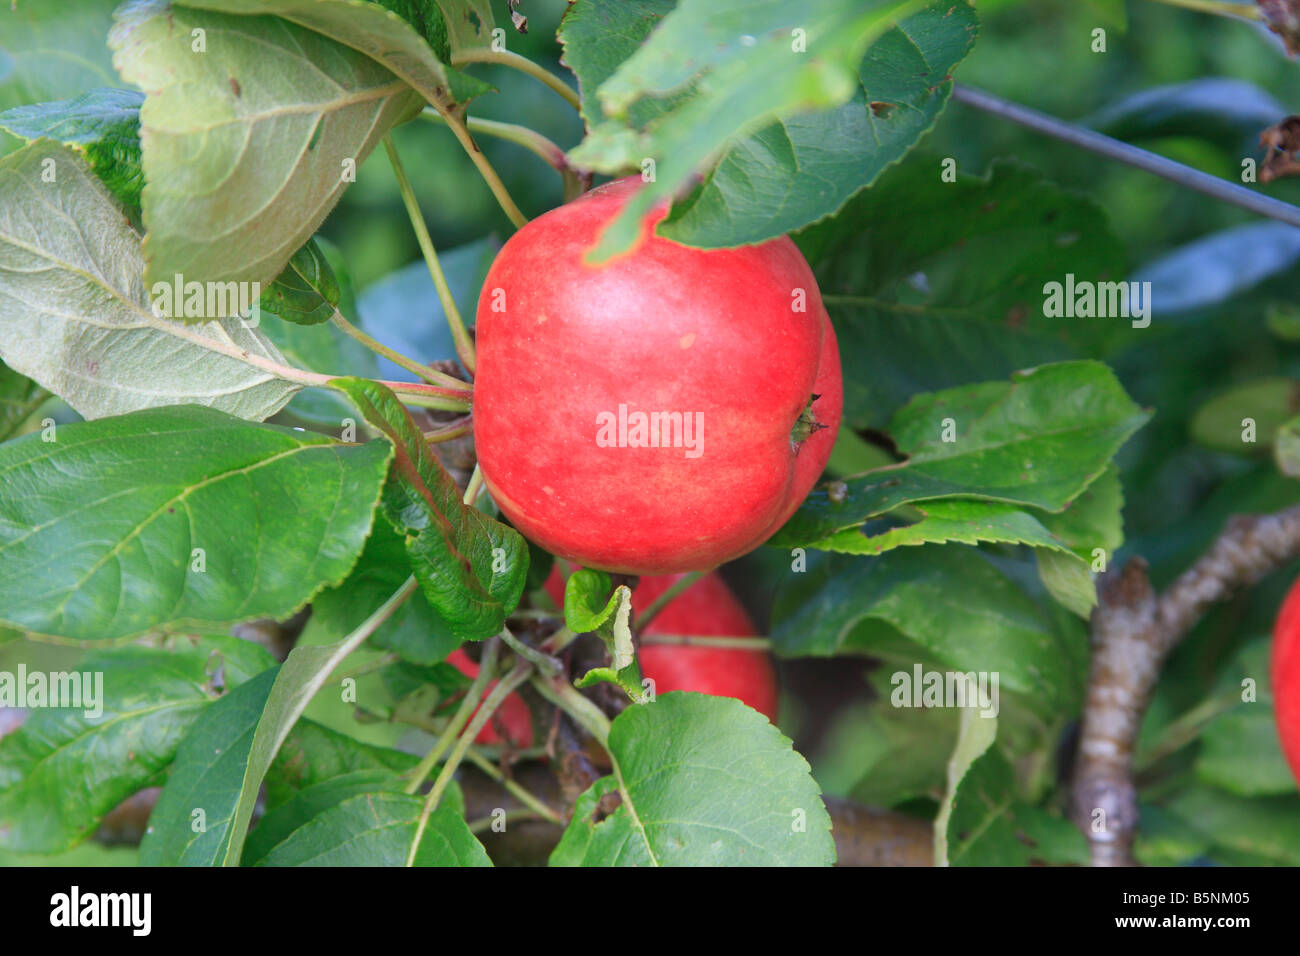 APPLE RED MILLER CLOSE UP OF FRUIT ON TREE - Stock Image